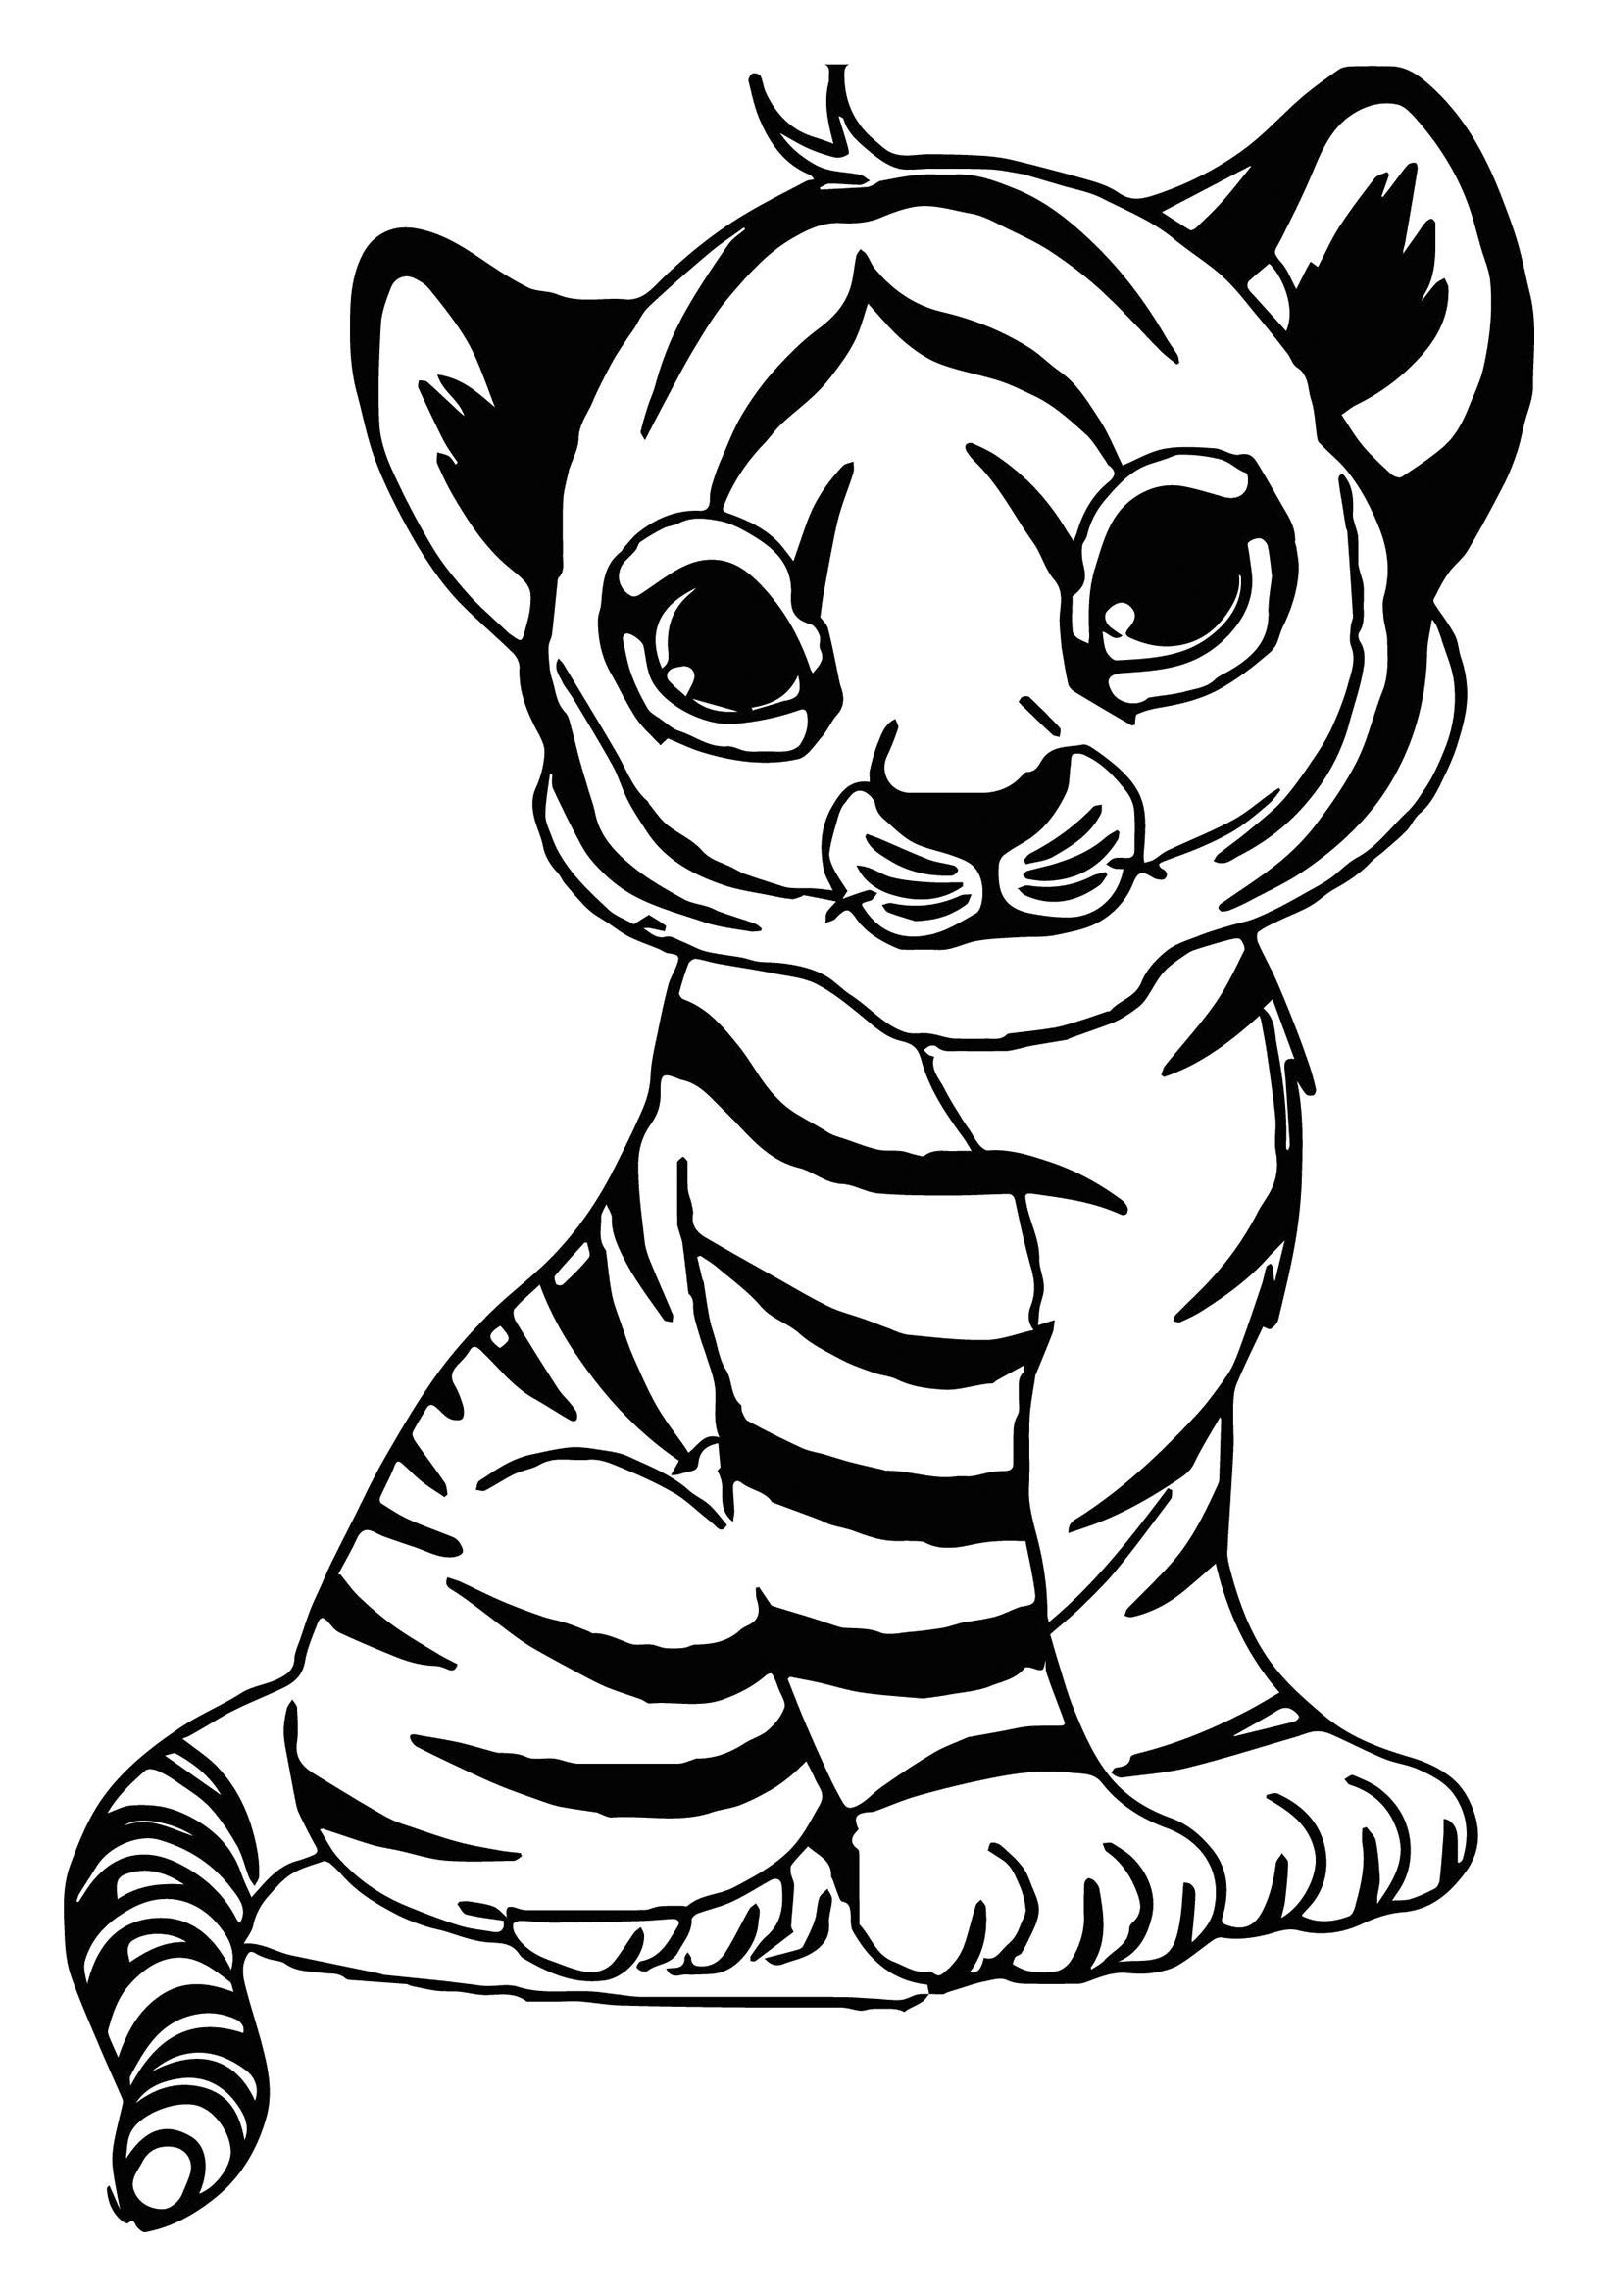 Baby Tiger Coloring Pages  Tigers to print for free Tigers Kids Coloring Pages